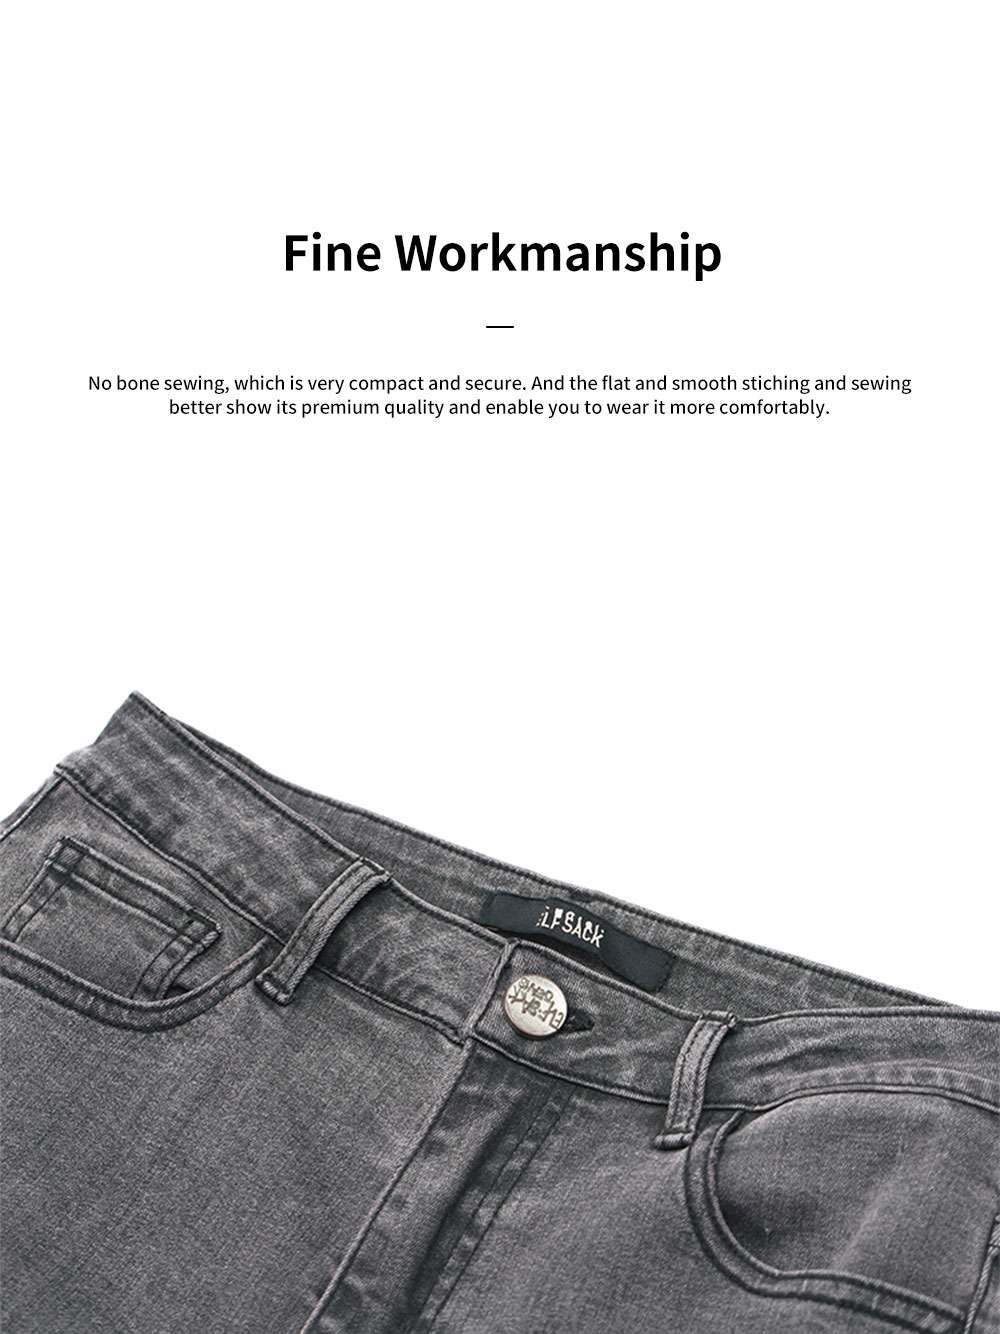 ELFSACK Women Skinny Jeans Fashion Elastic Casual Small Feet Cropped Jeans with Frayed Hem and Ripped Hole 4